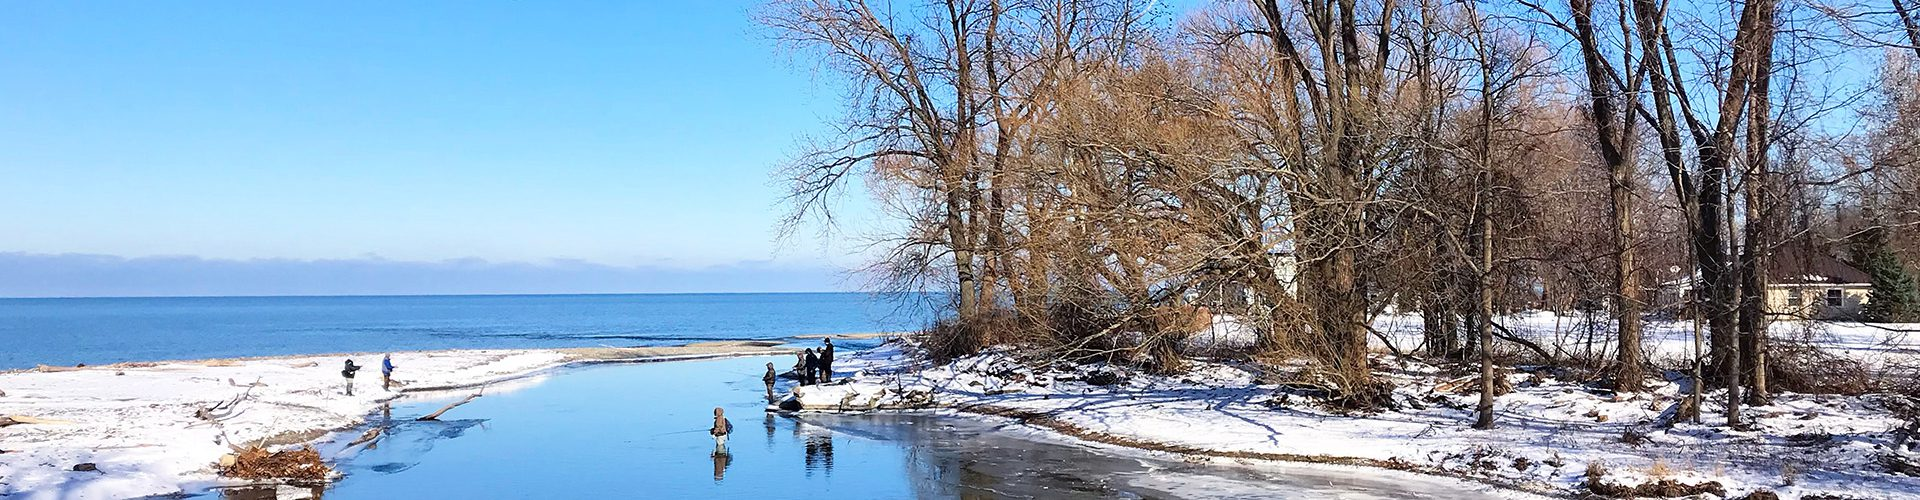 Anglers fish along snowy lake shore in Erie County